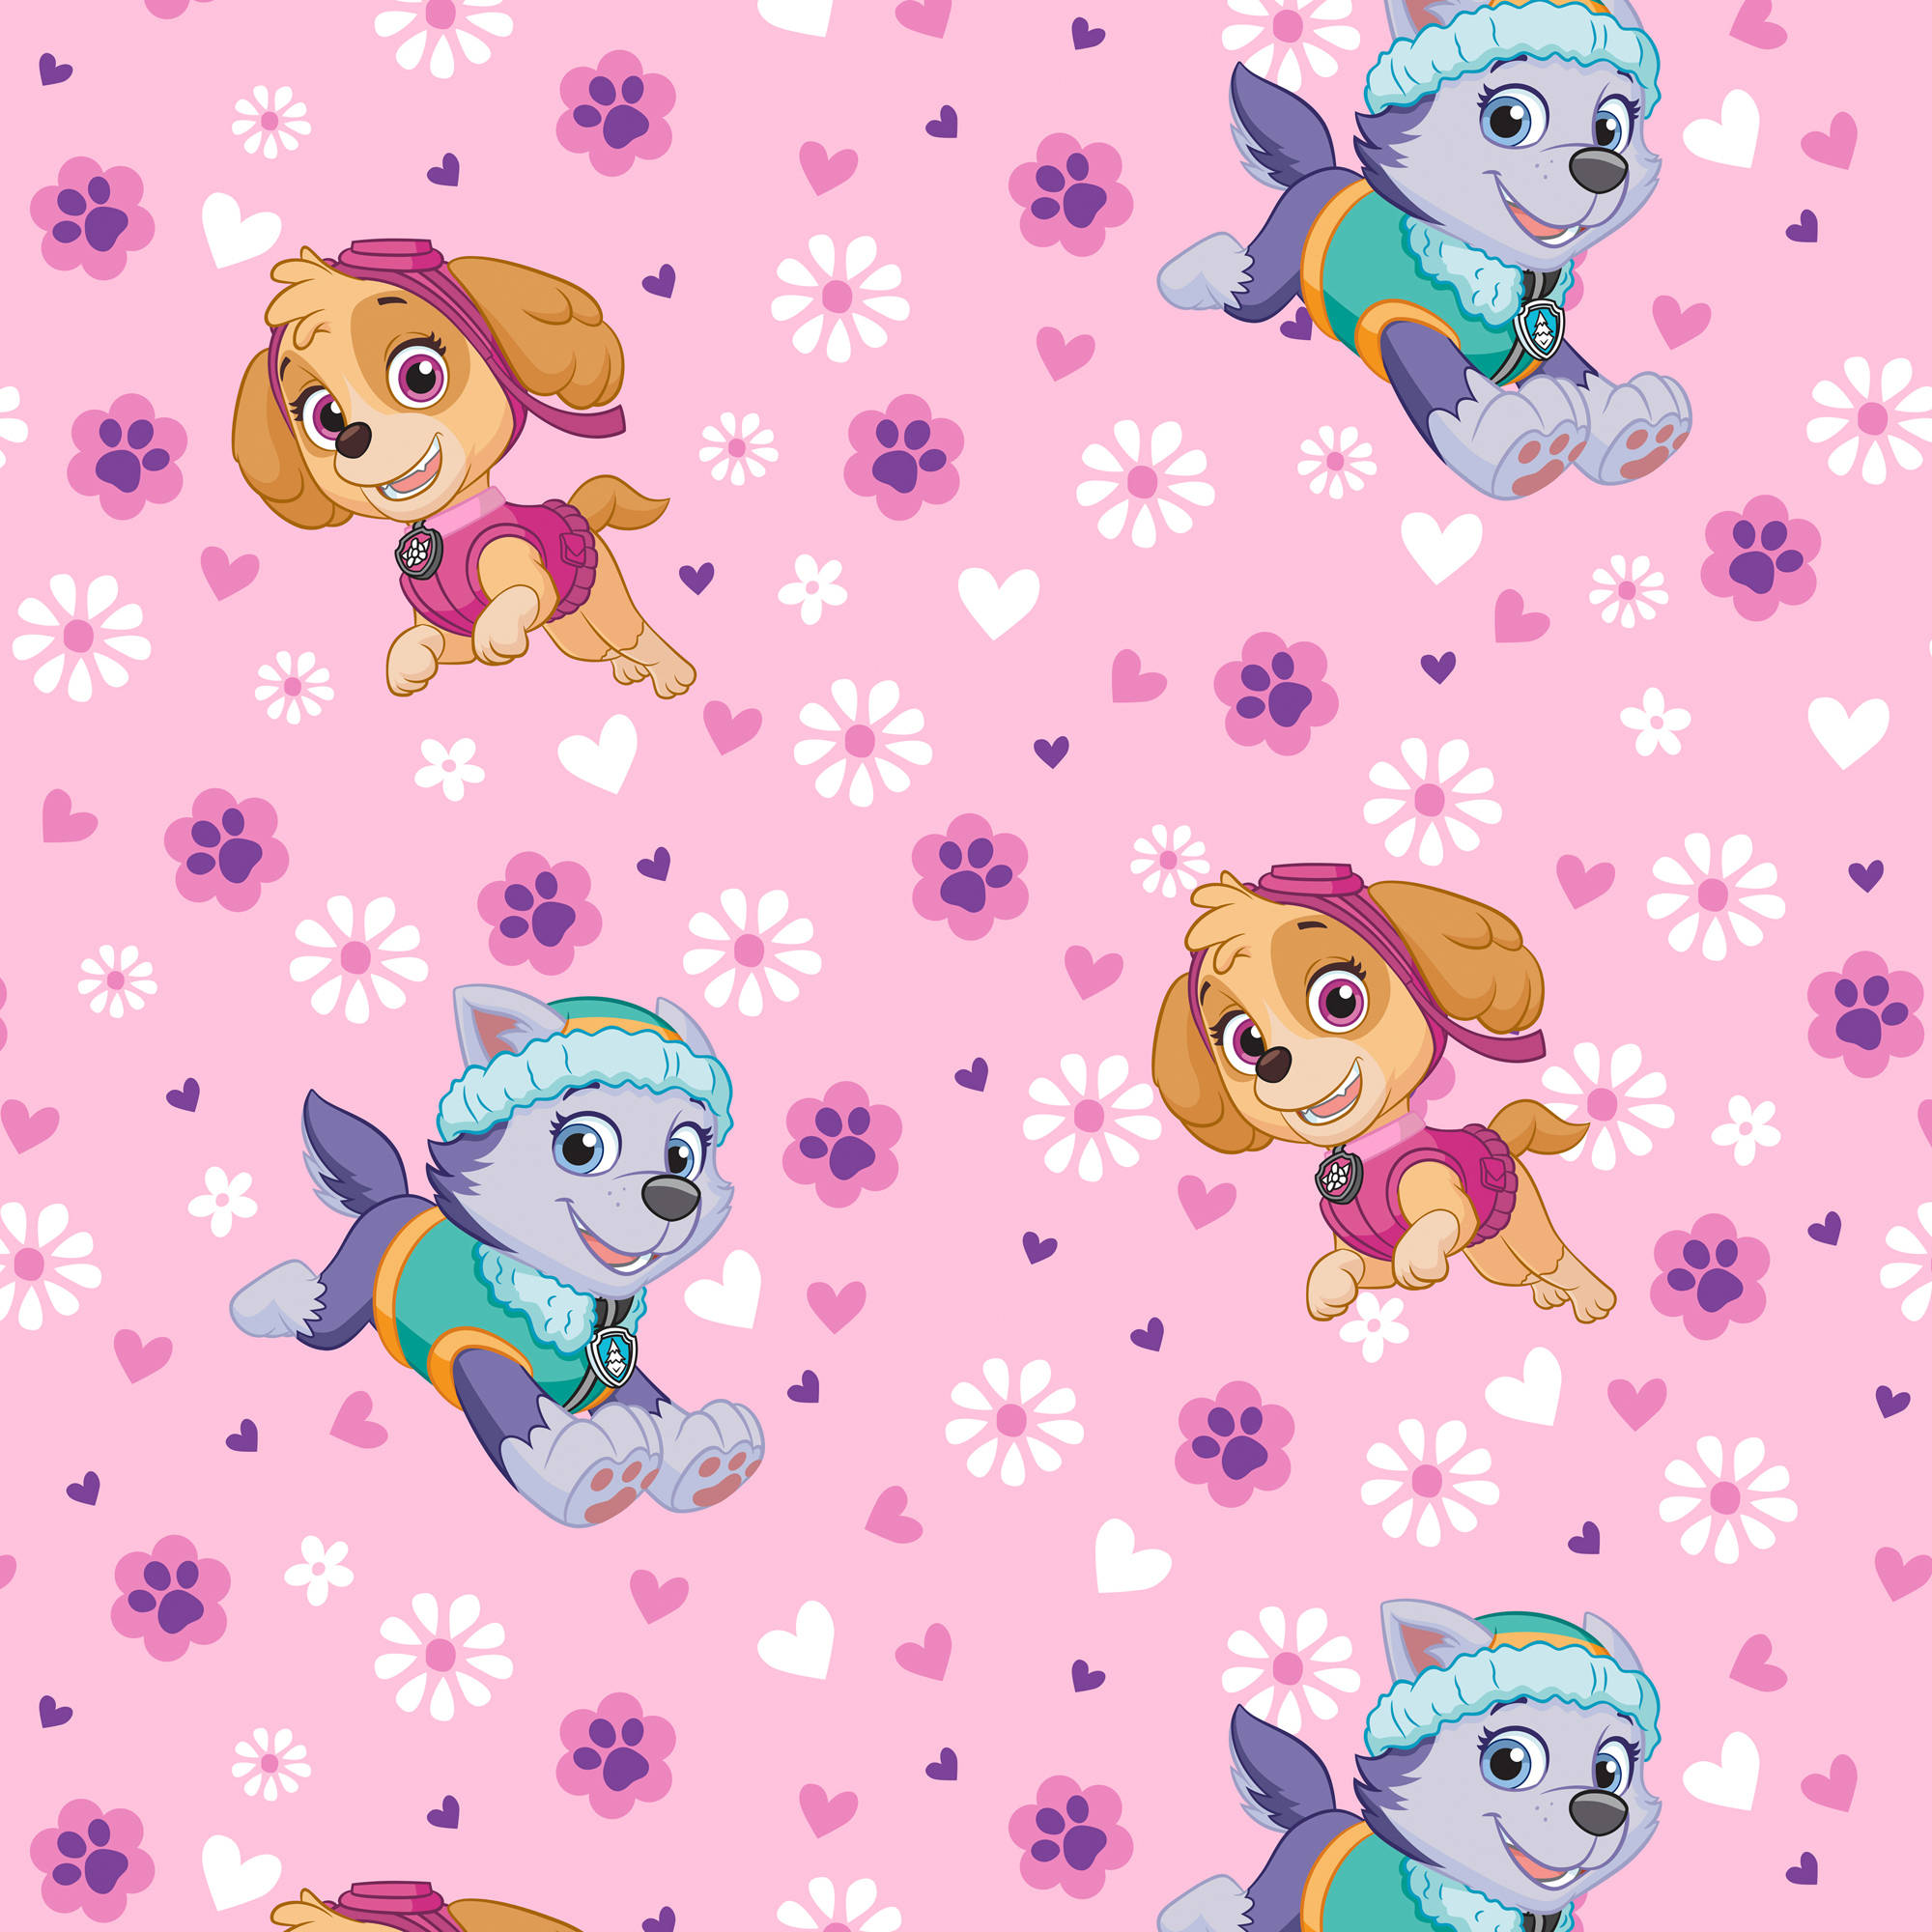 Paw Patrol Pup Power Fleece Fabric By The Yard, 60""